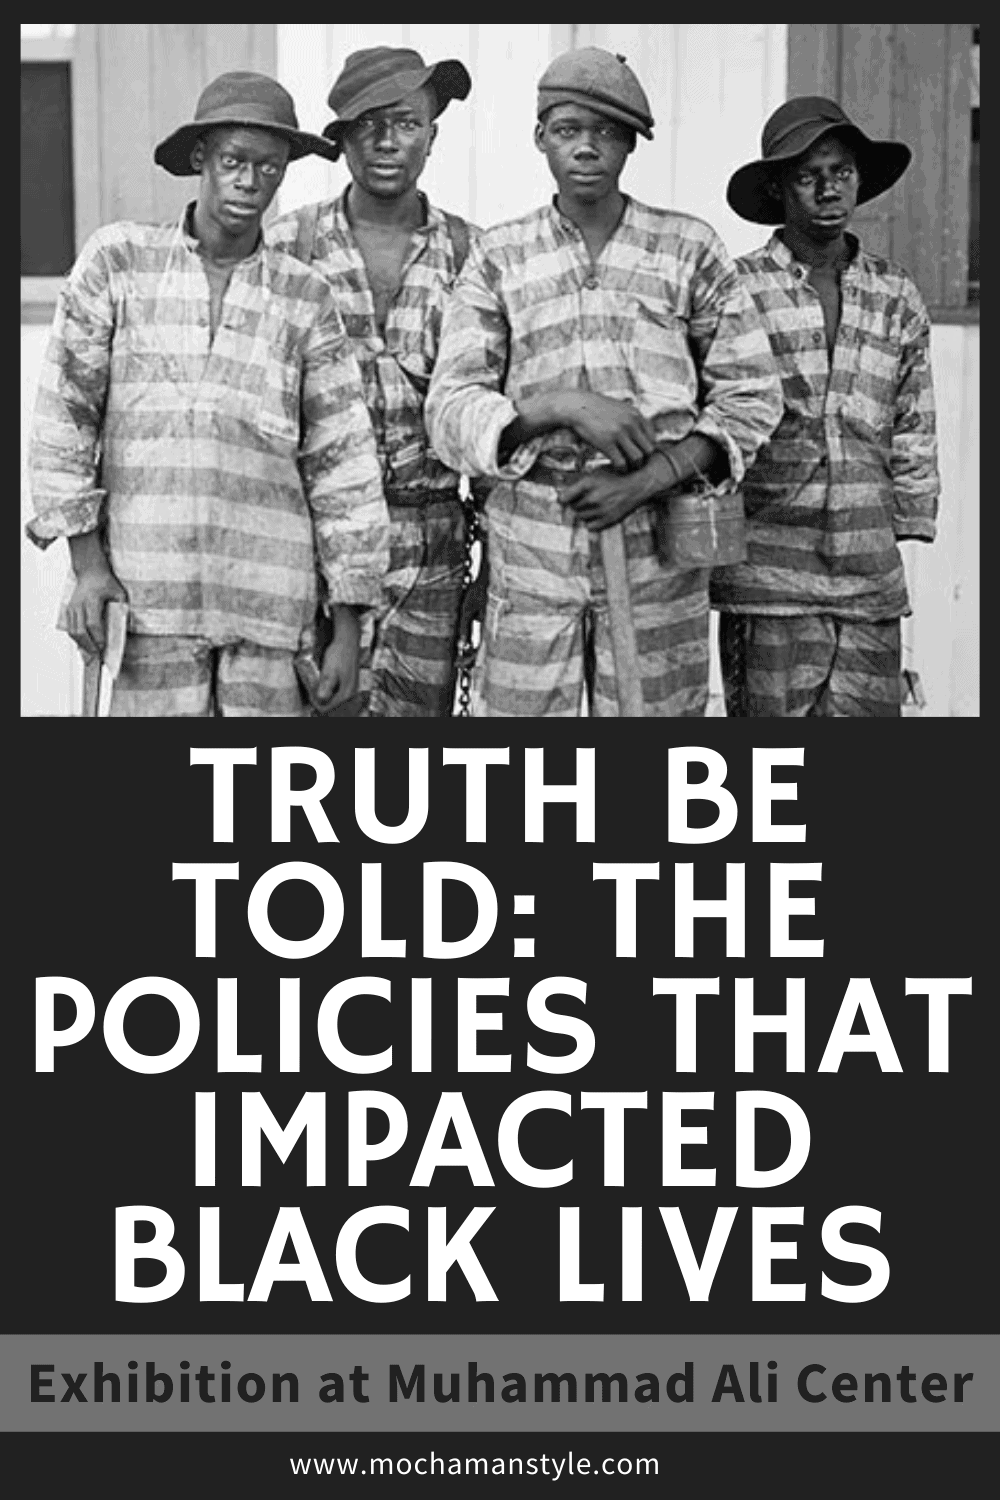 Truth Be Told: The Policies that Impacted Black Lives at Muhammad Ali Center